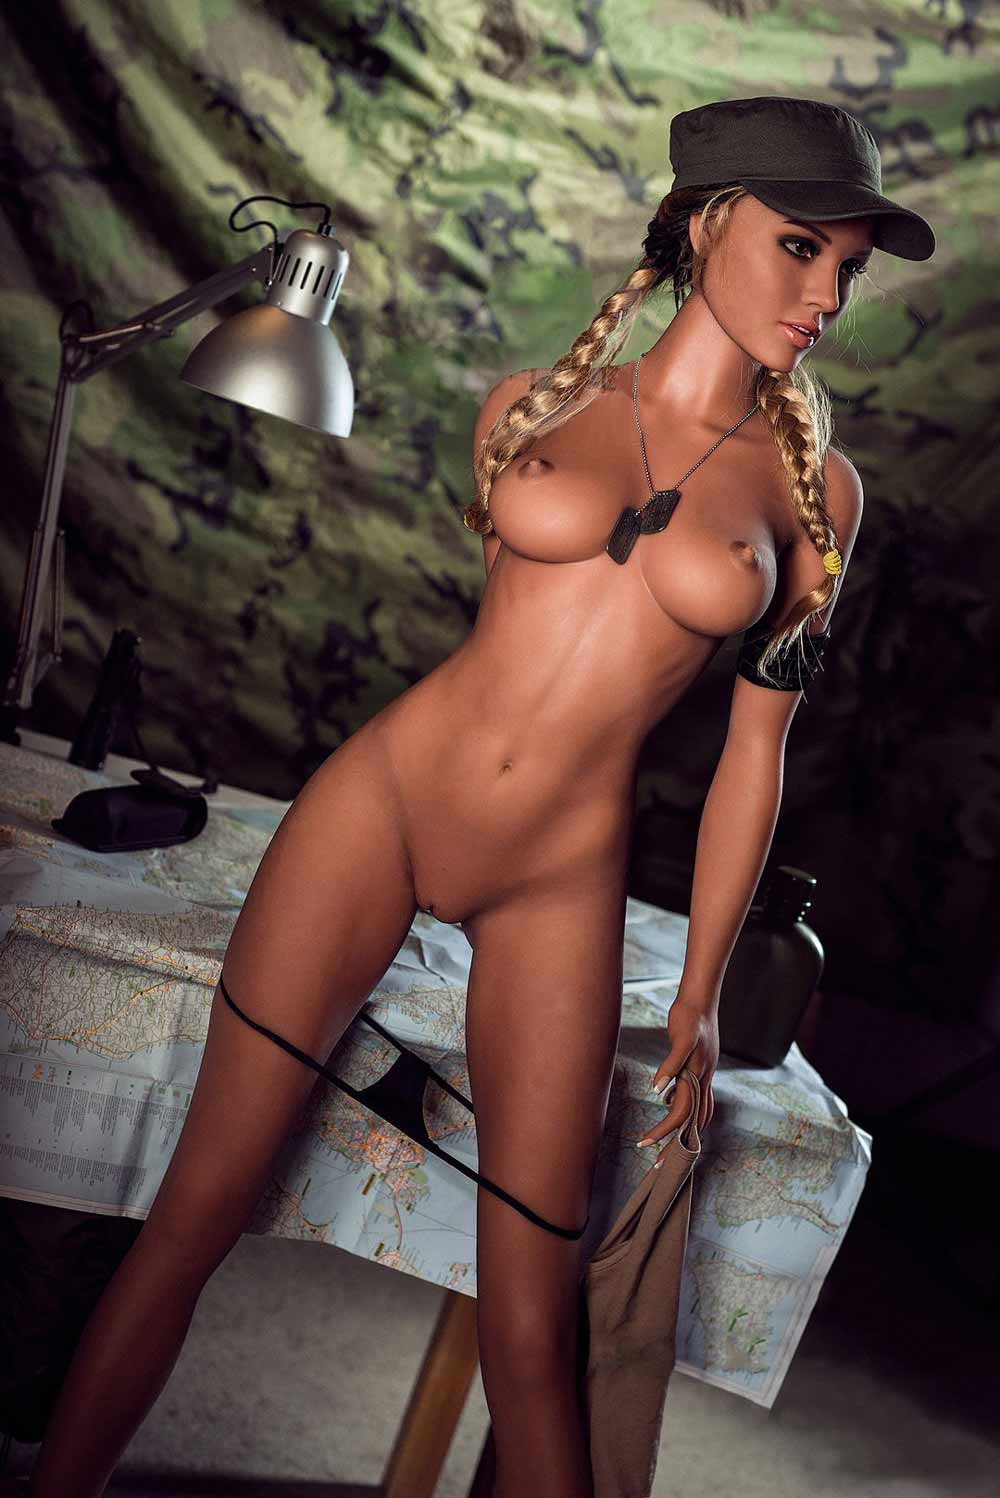 Sex doll taking off thong